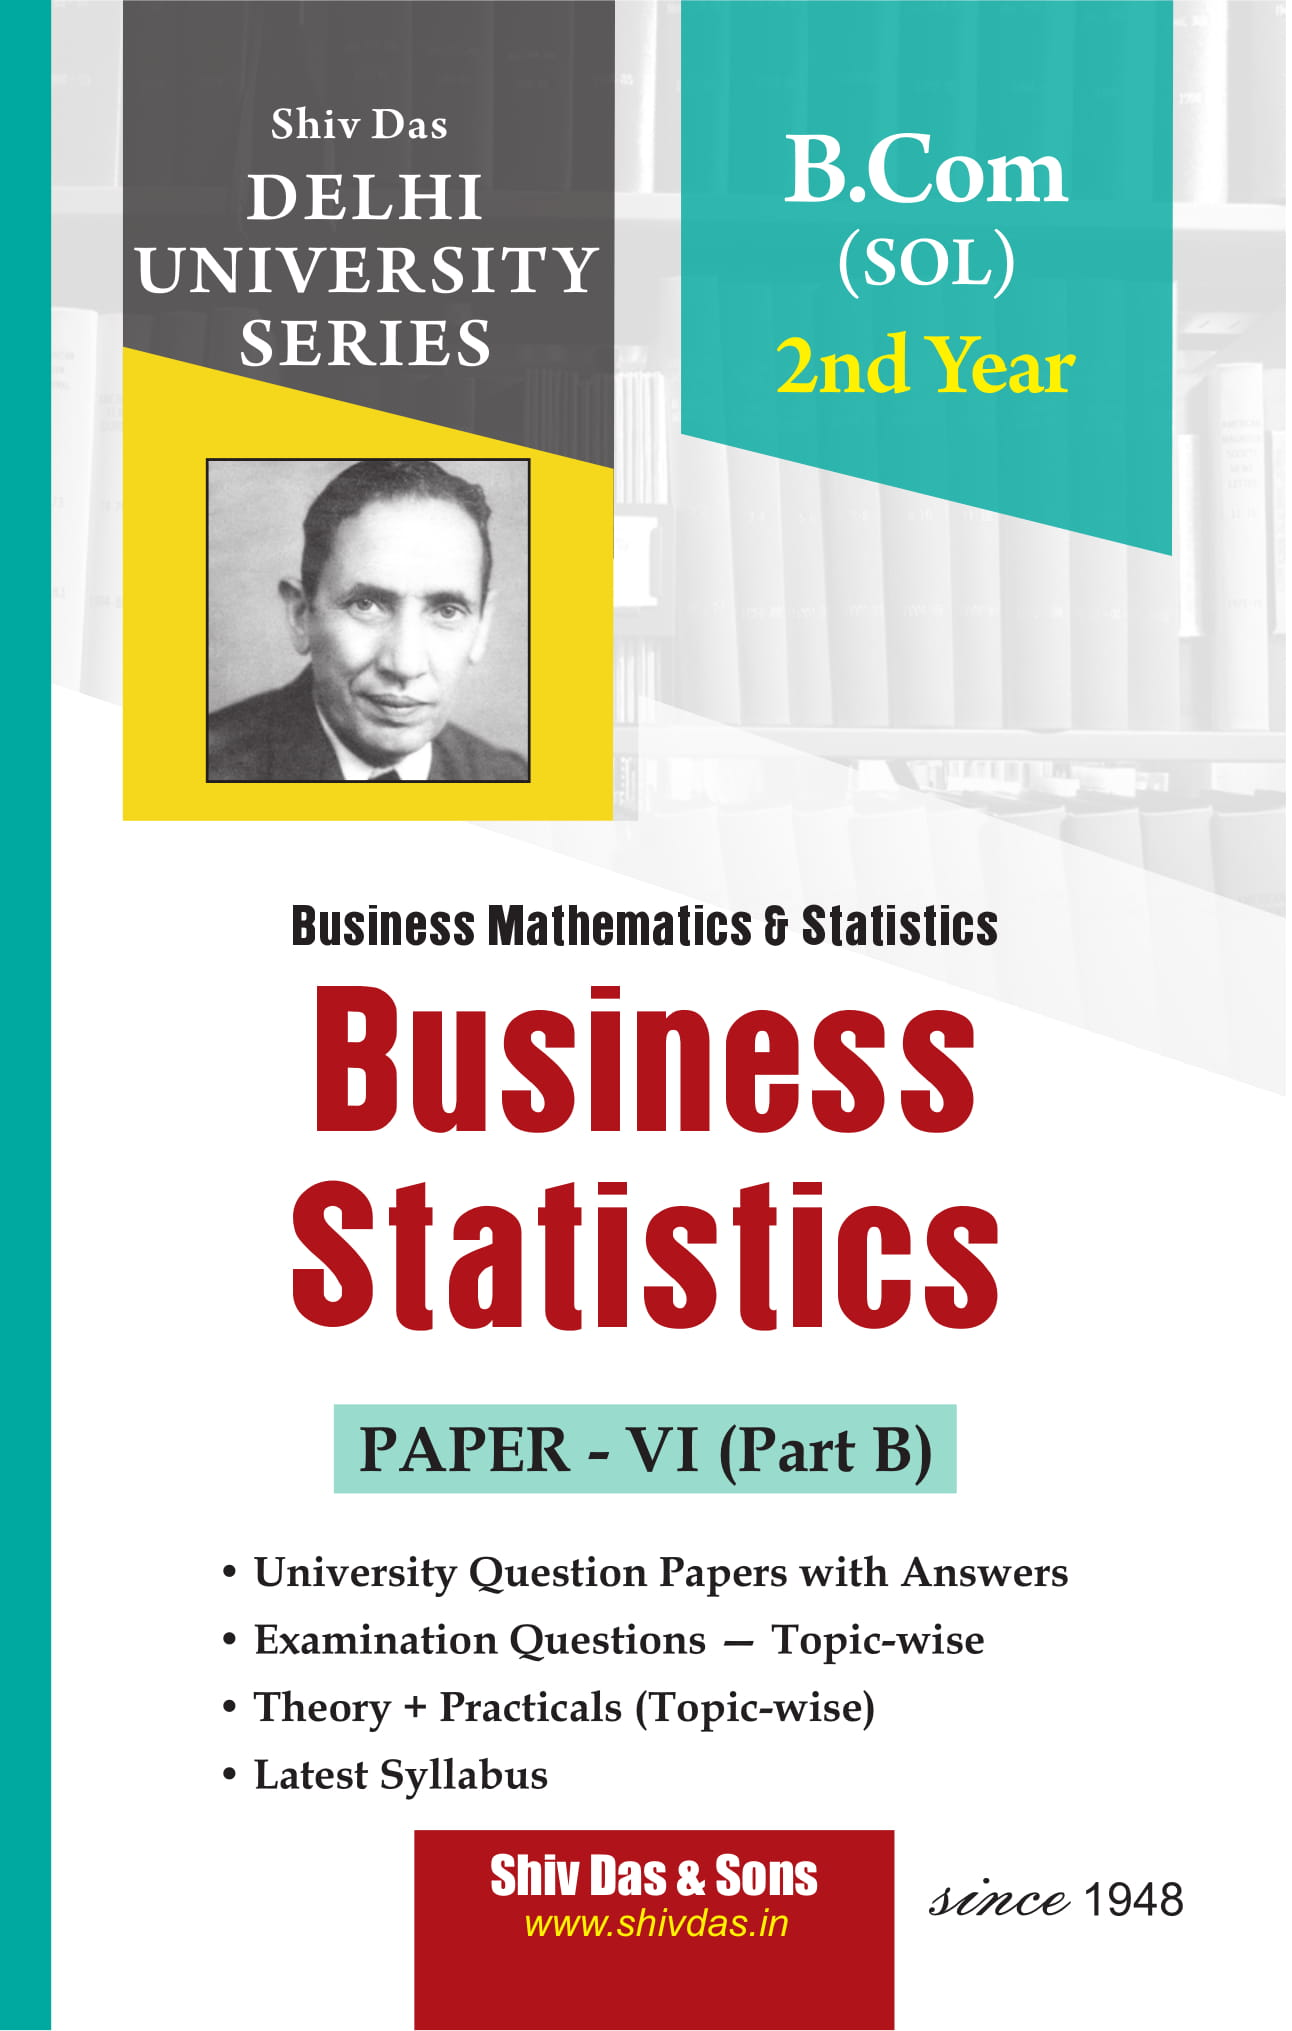 Business Statistics (Eng. Medium) for B.Com 2nd Year SOL/External